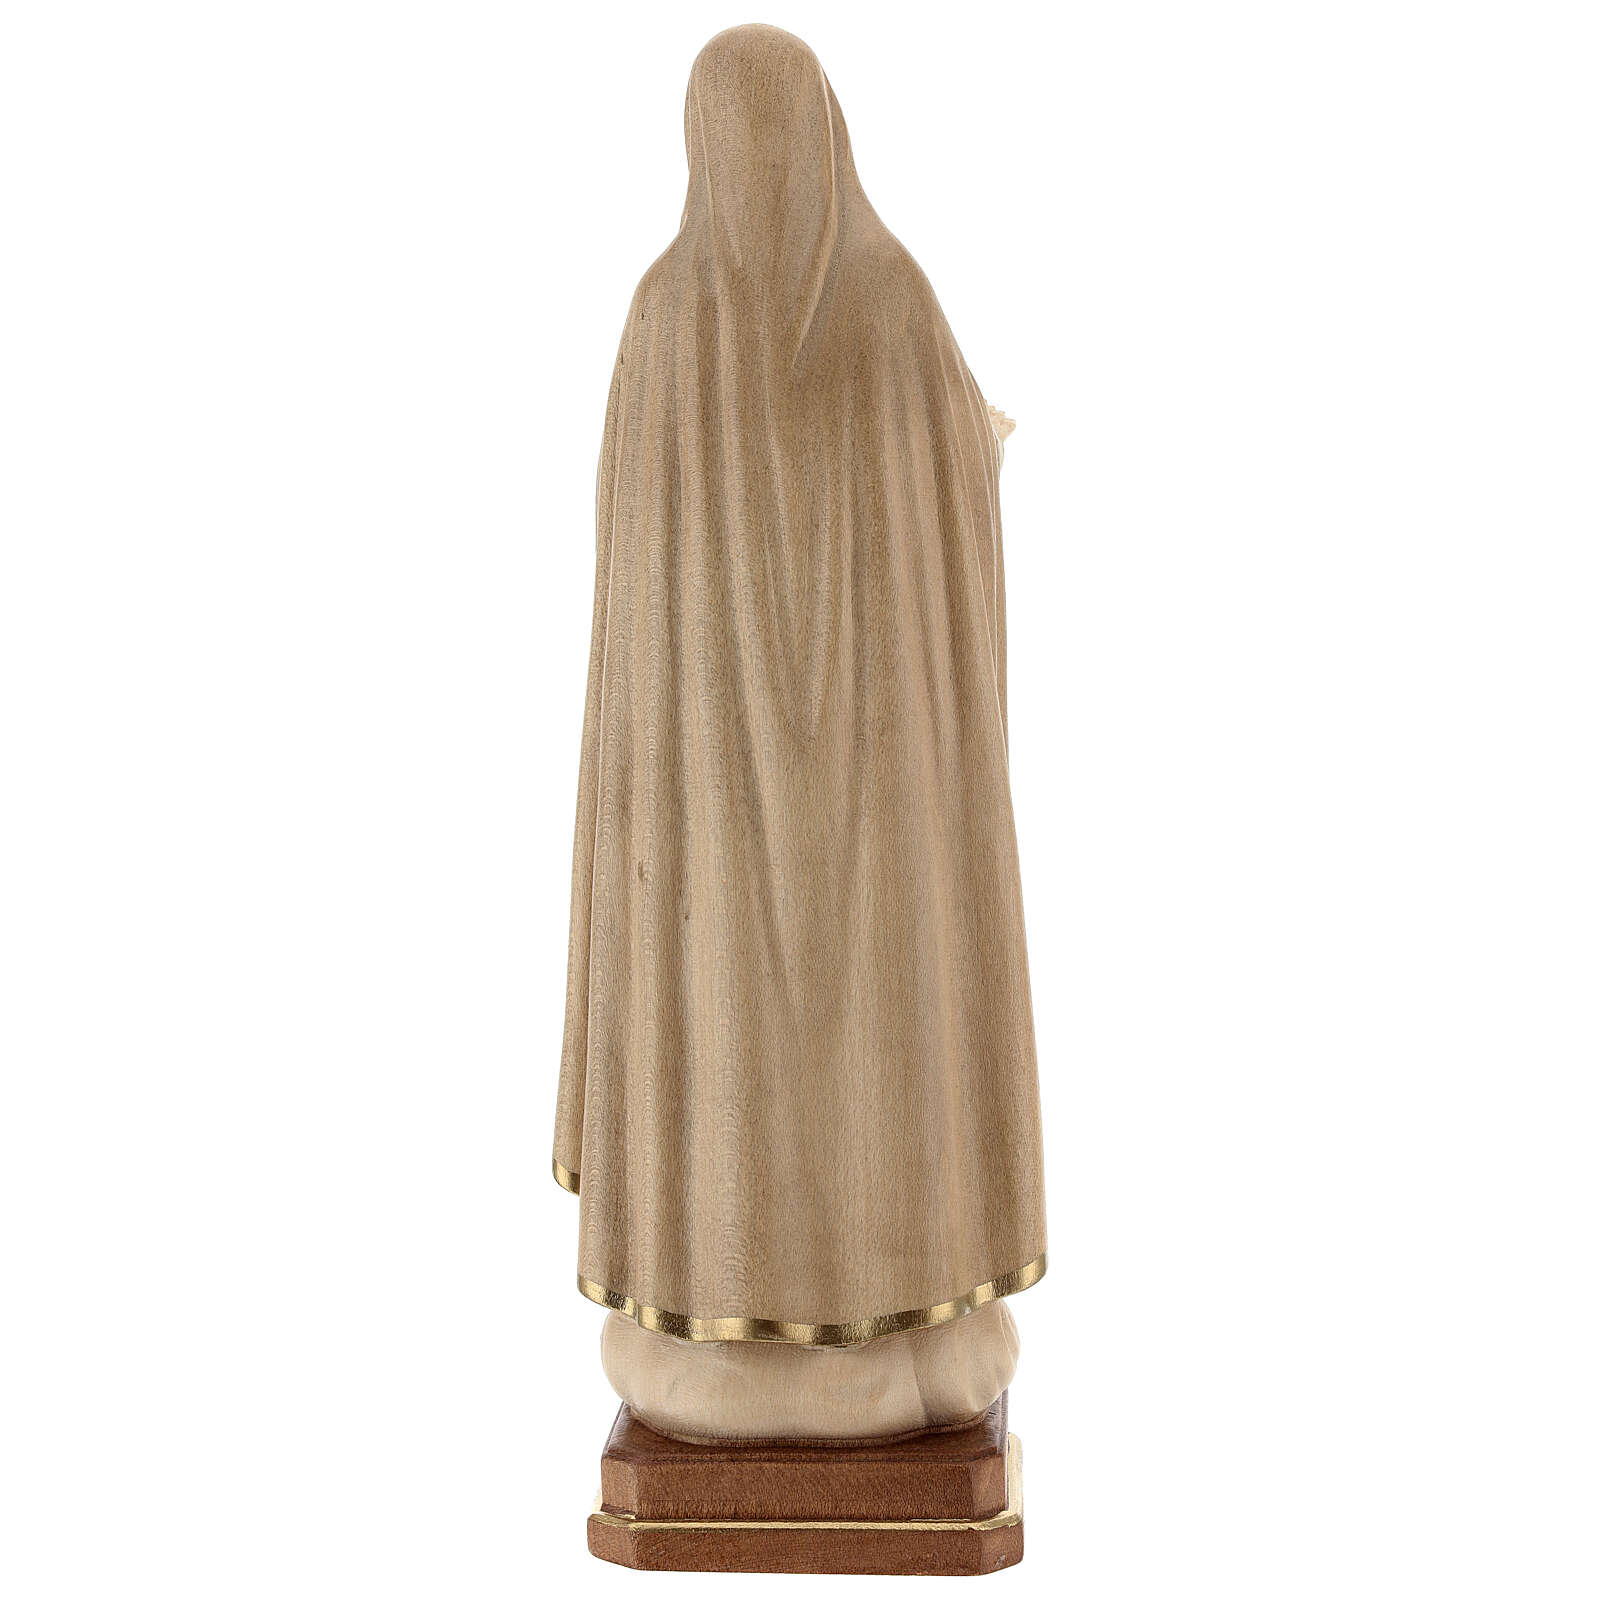 Our Lady of Fatima fifth Apparition in wood of Valgardena burnished in 3 colours 4